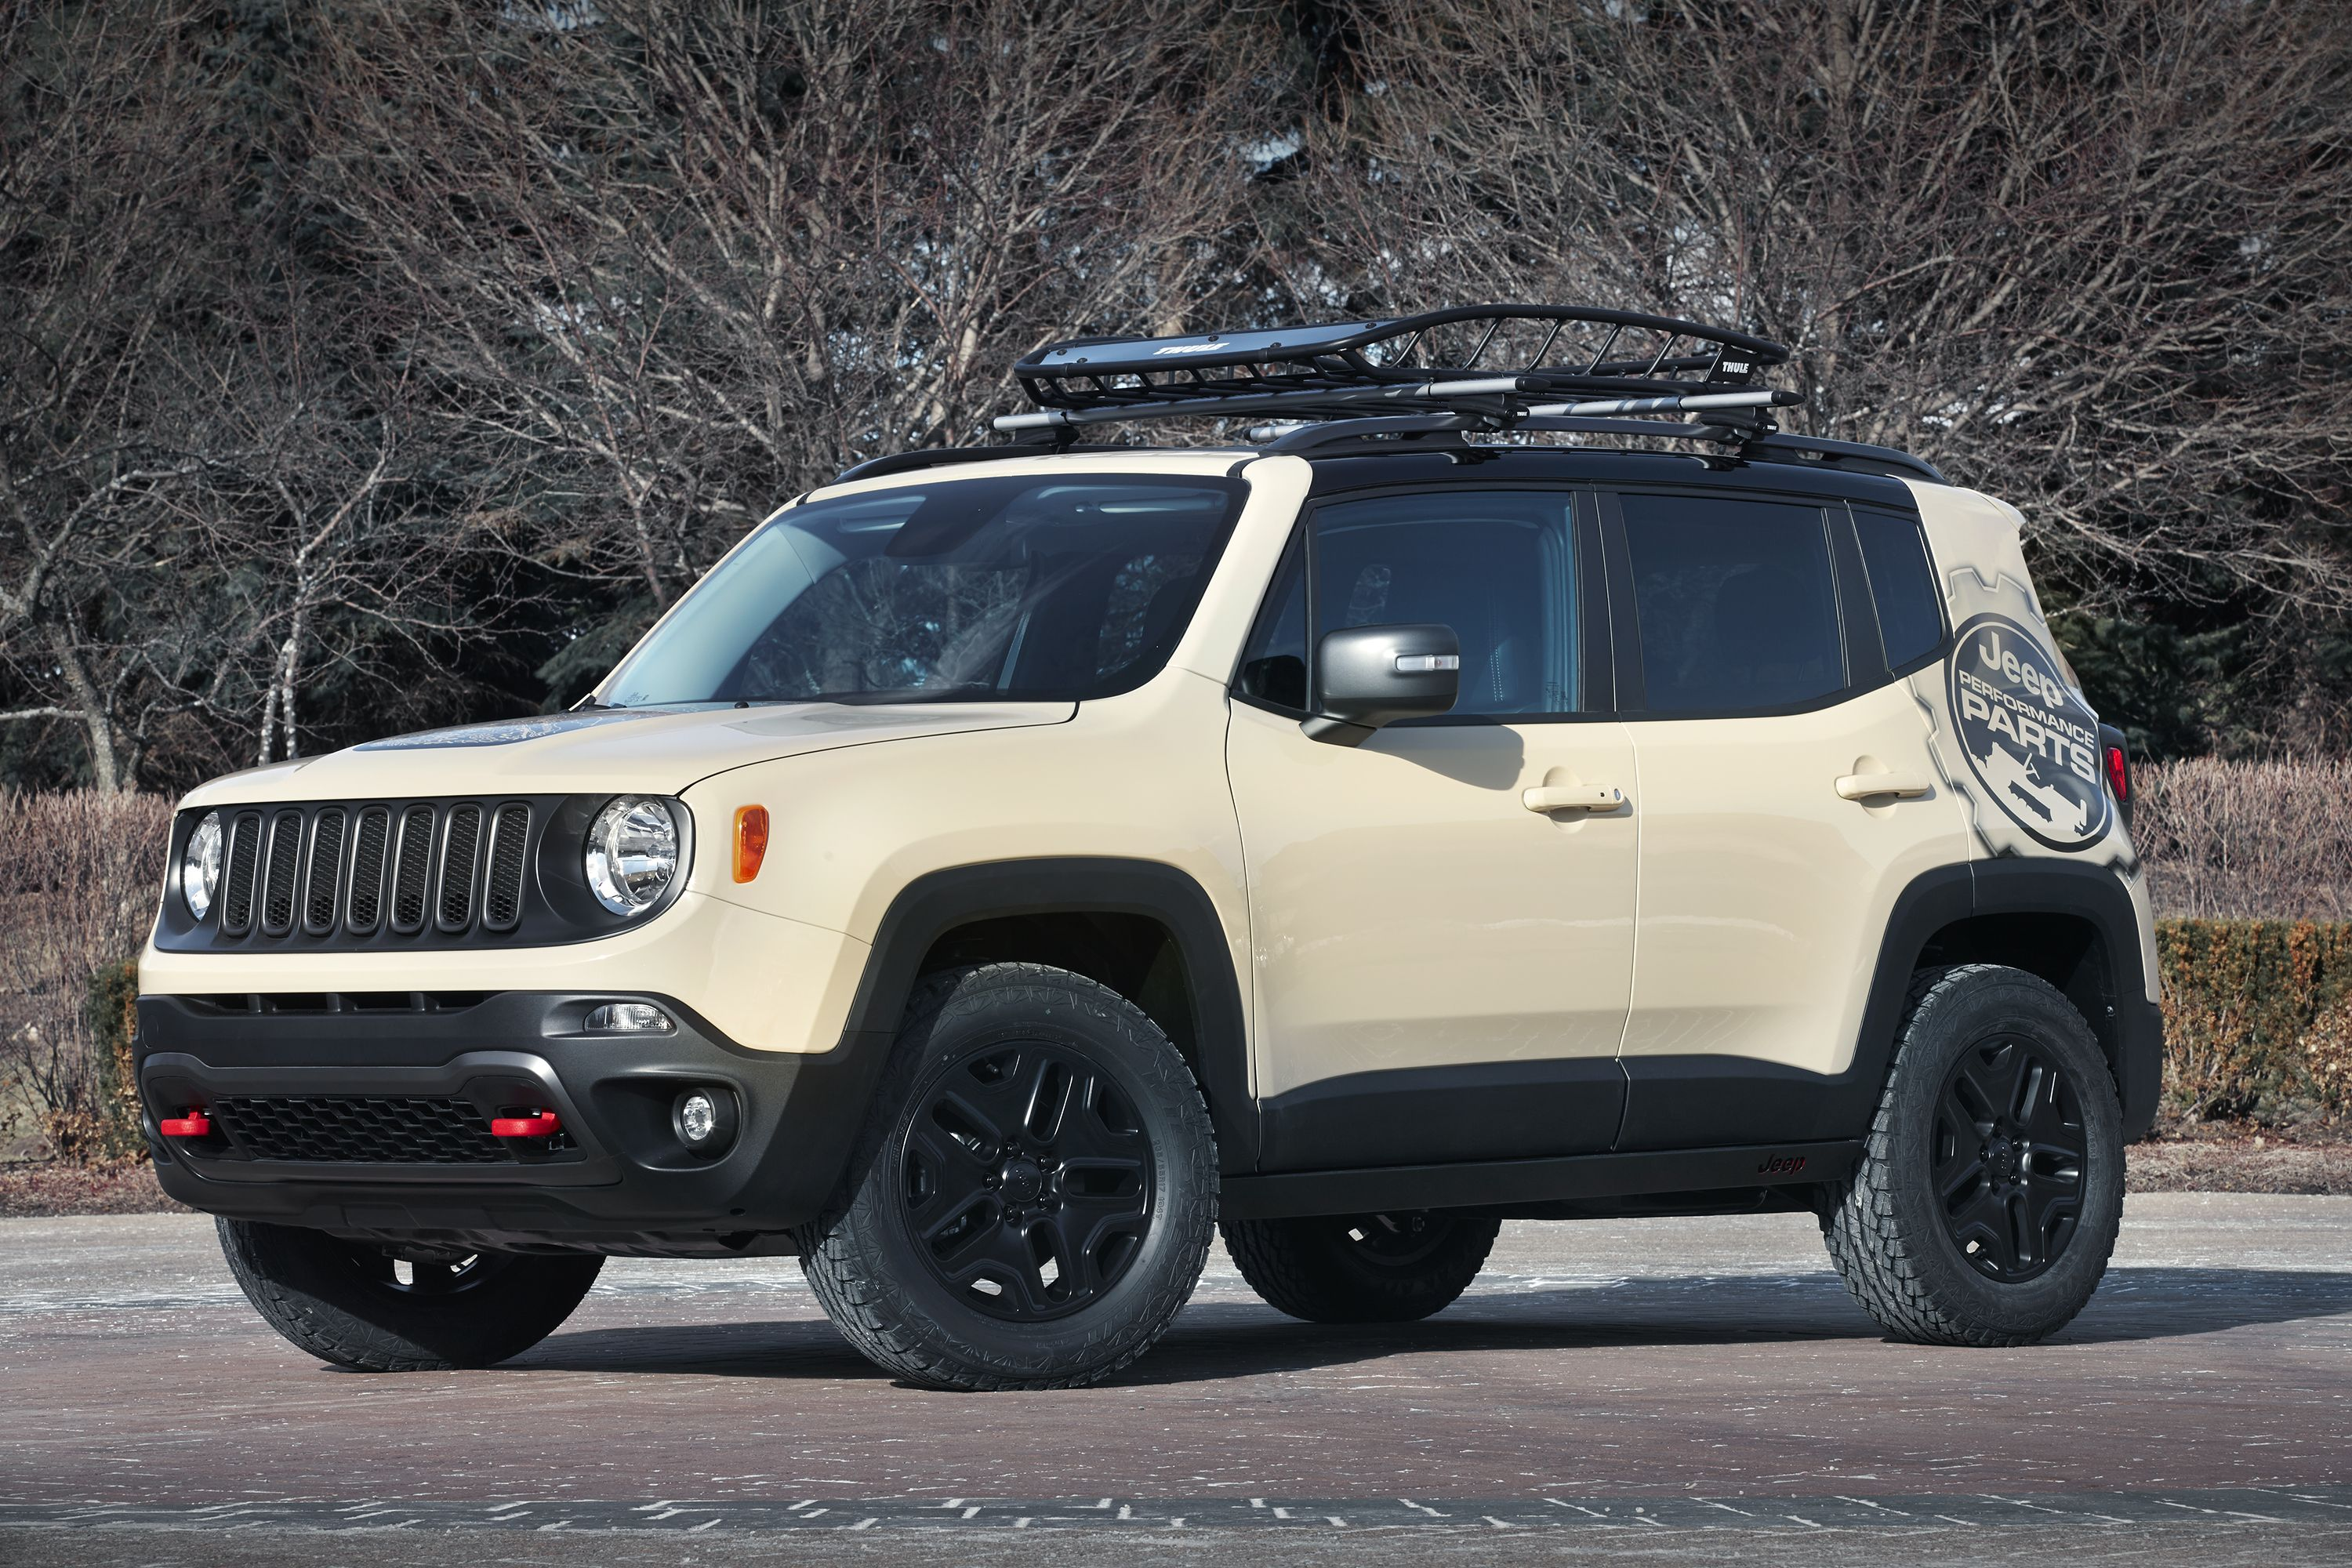 Jeep Renegade Desert Hawk Is Based On The Newest Suv Was Built For Ultimate Adventure And Equipped